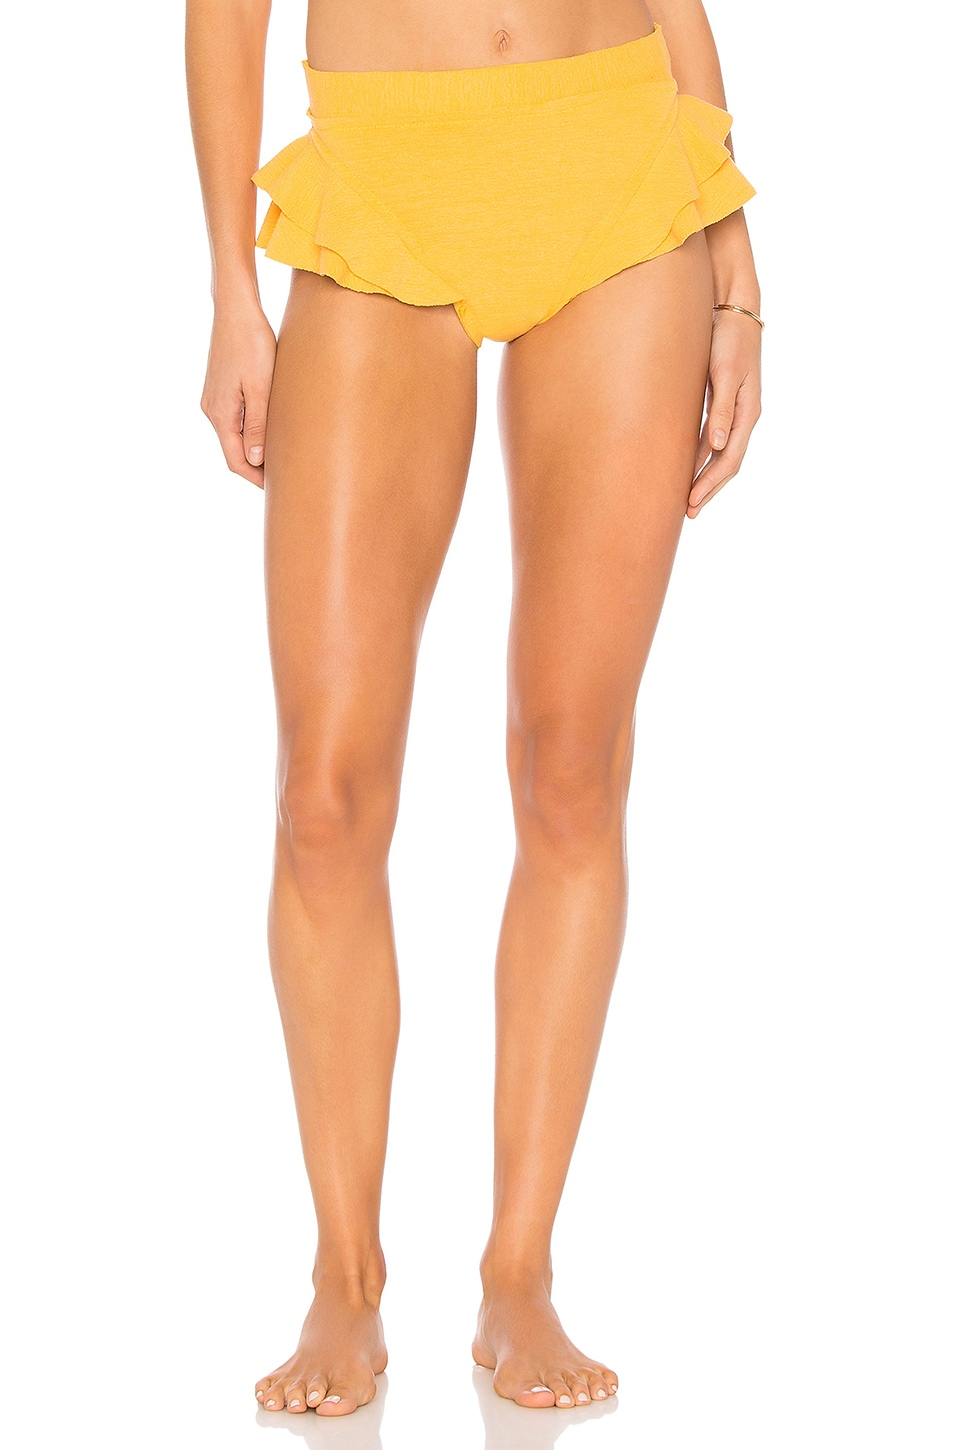 CLUBE BOSSA TURBE HIGH WAIST BIKINI BOTTOM